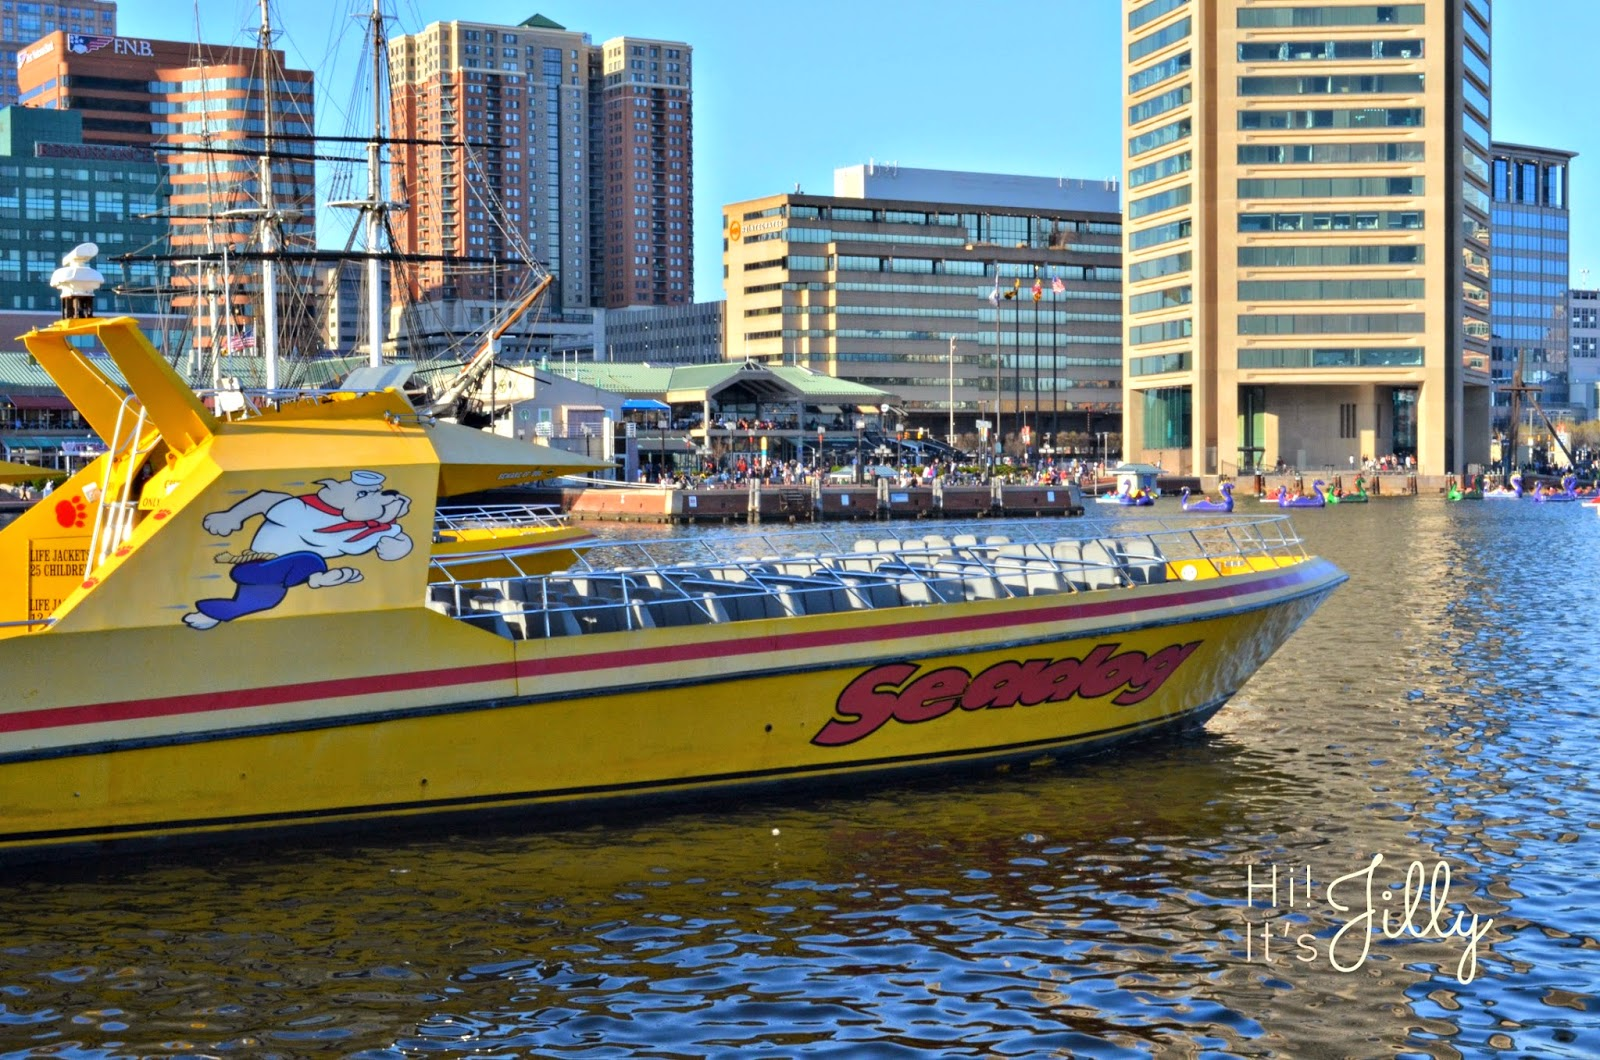 A SeaDog Cruise is the perfect fun family activity! #vacation #baltimore #cruise #innerharbor